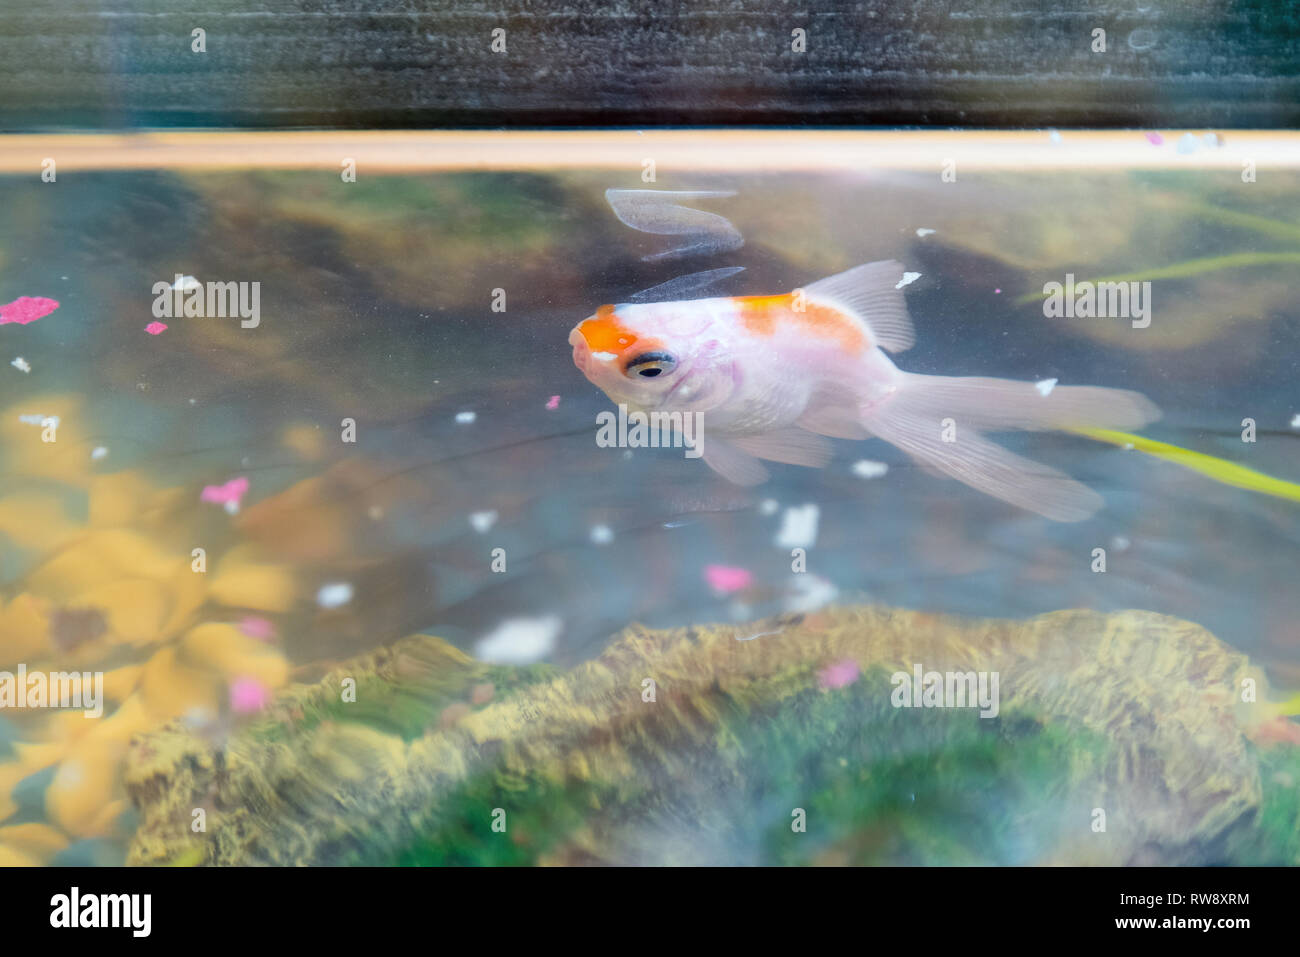 Feeding goldfish in the aquarium at home. Fish rock and plants in the background - Stock Image